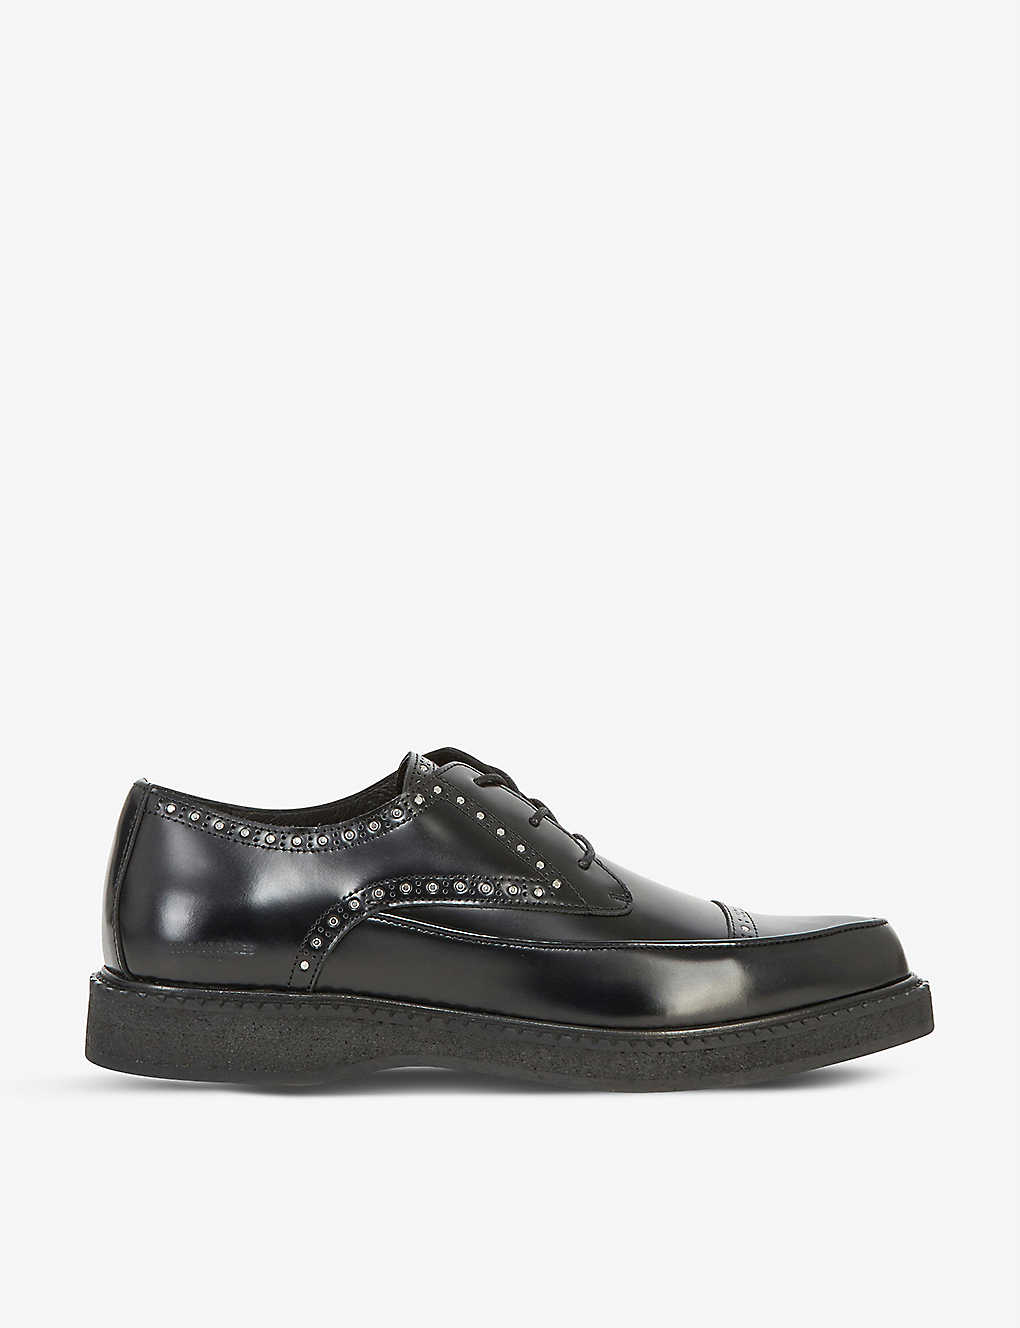 The Kooples Leathers STUDDED LEATHER BROGUES